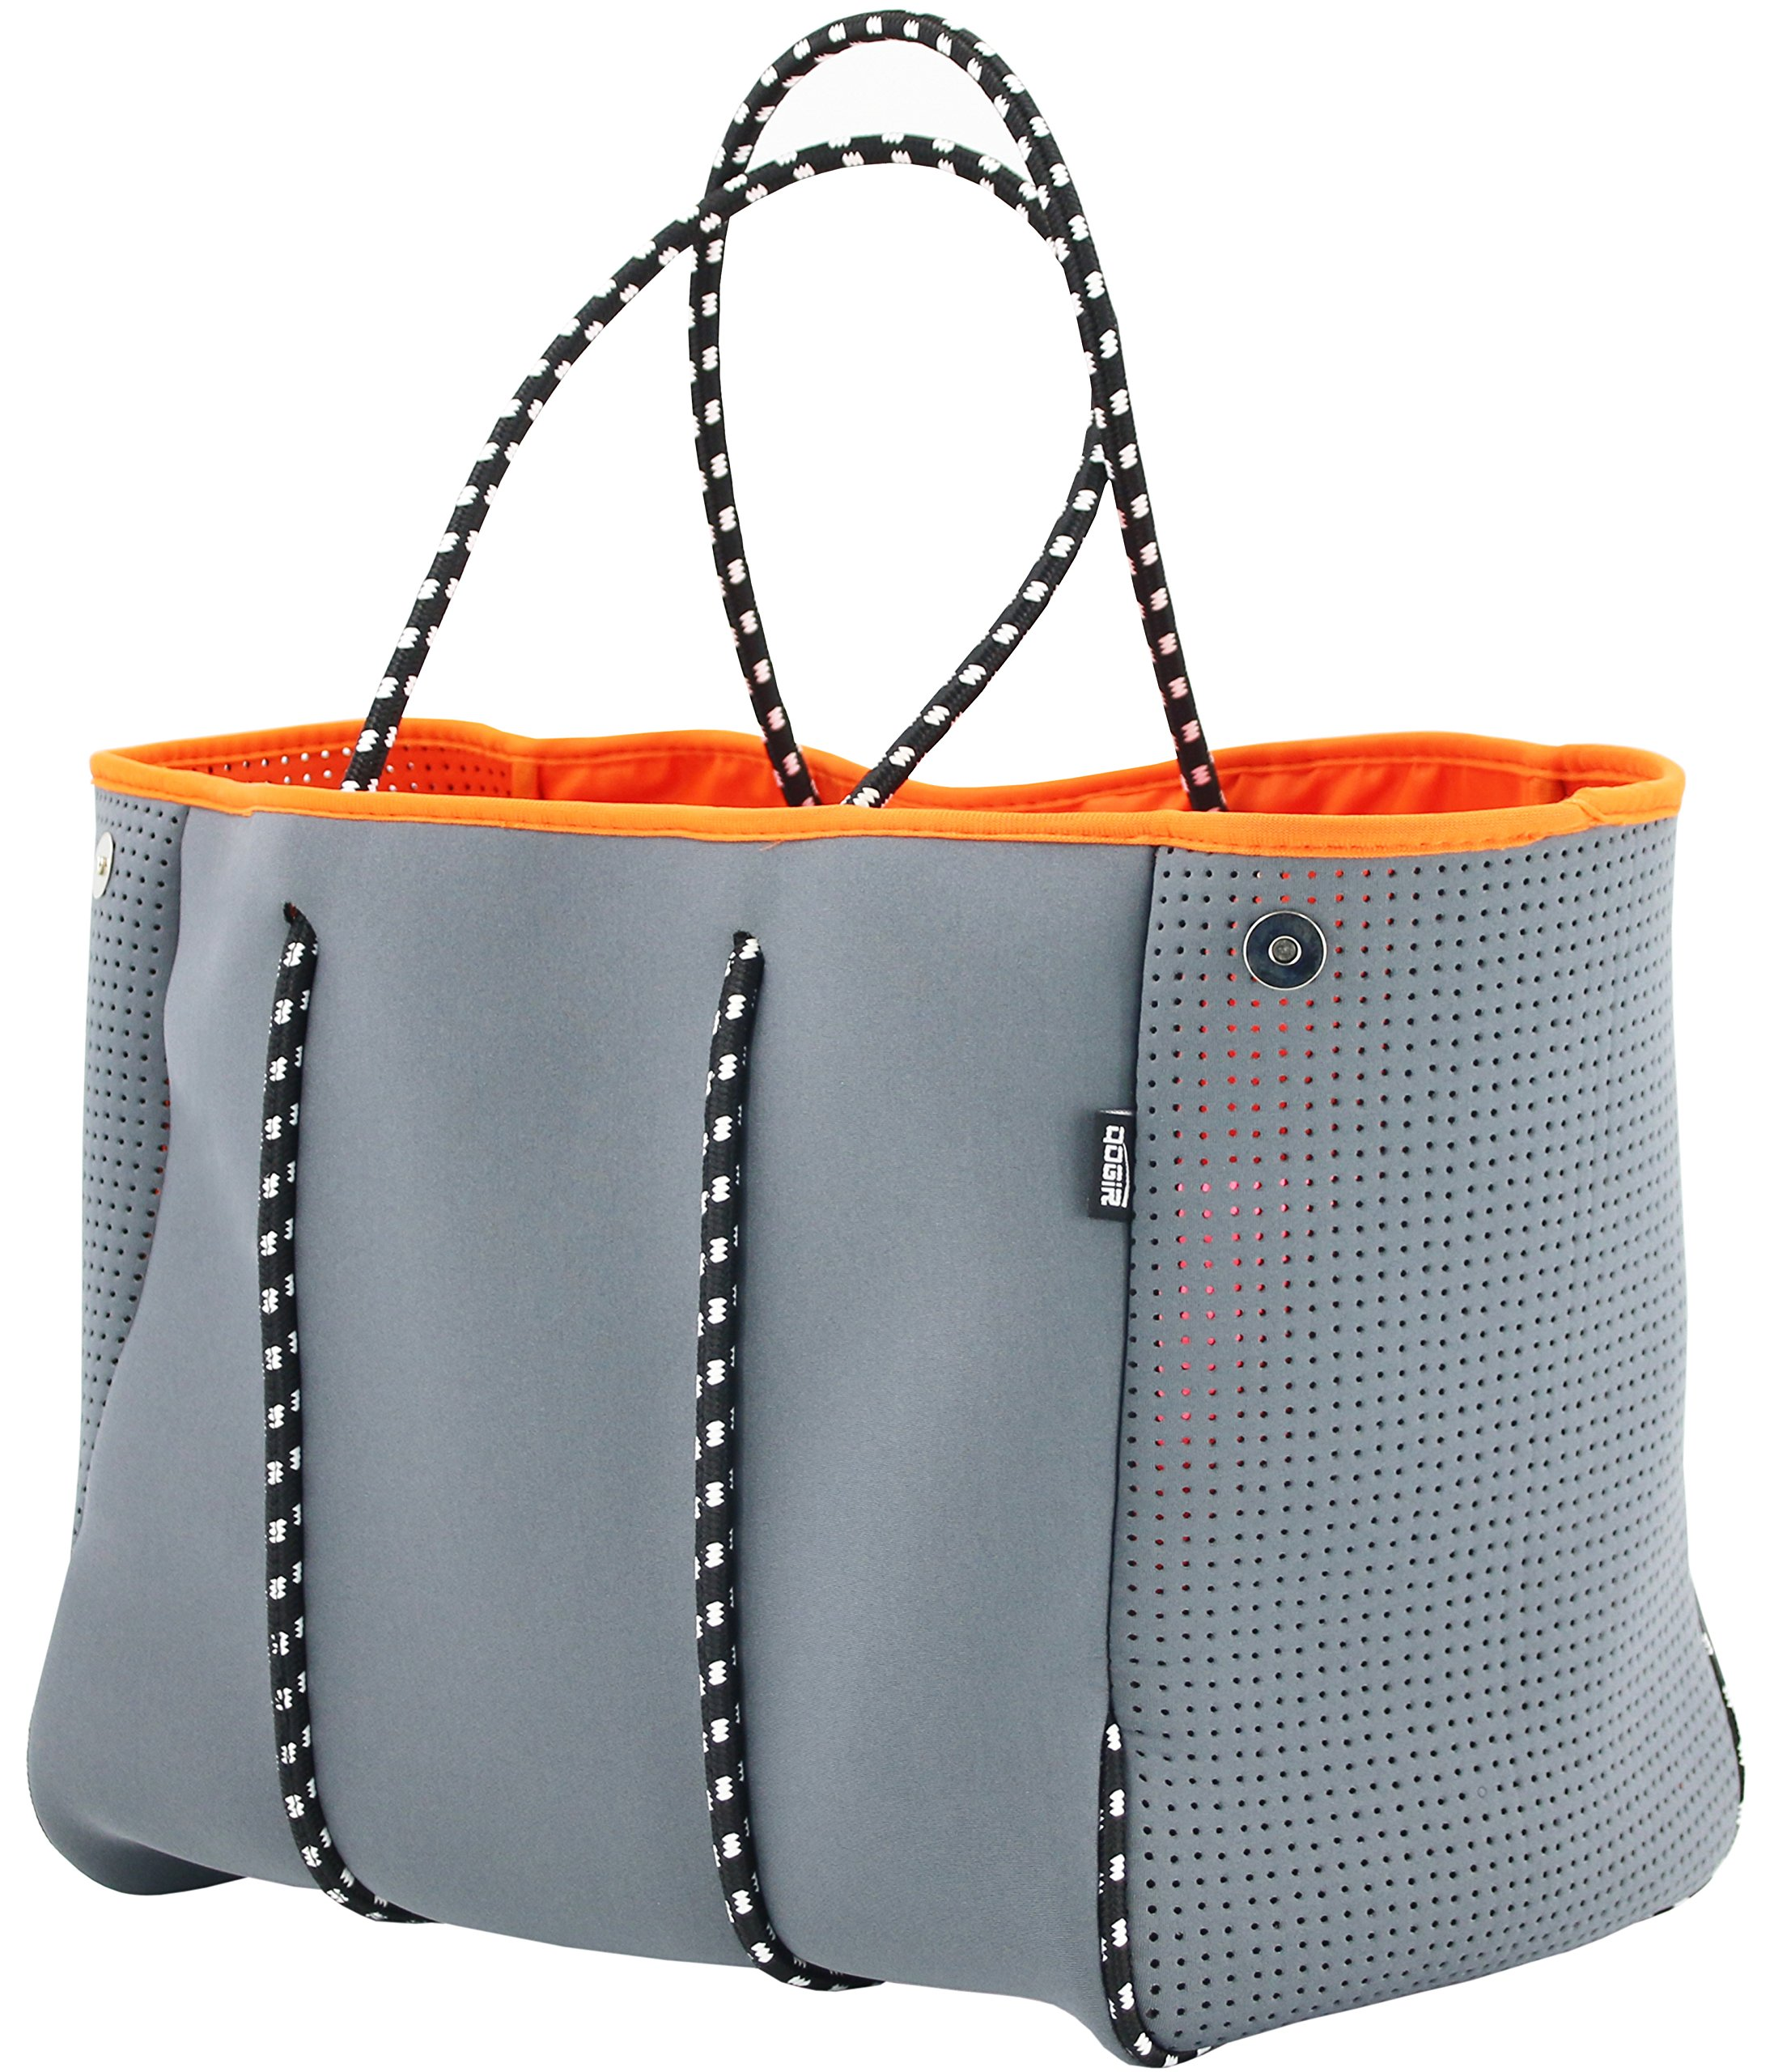 QOGiR Neoprene Multipurpose Bag Tote with Inner Zipper Pocket and Movable Board (Grey)